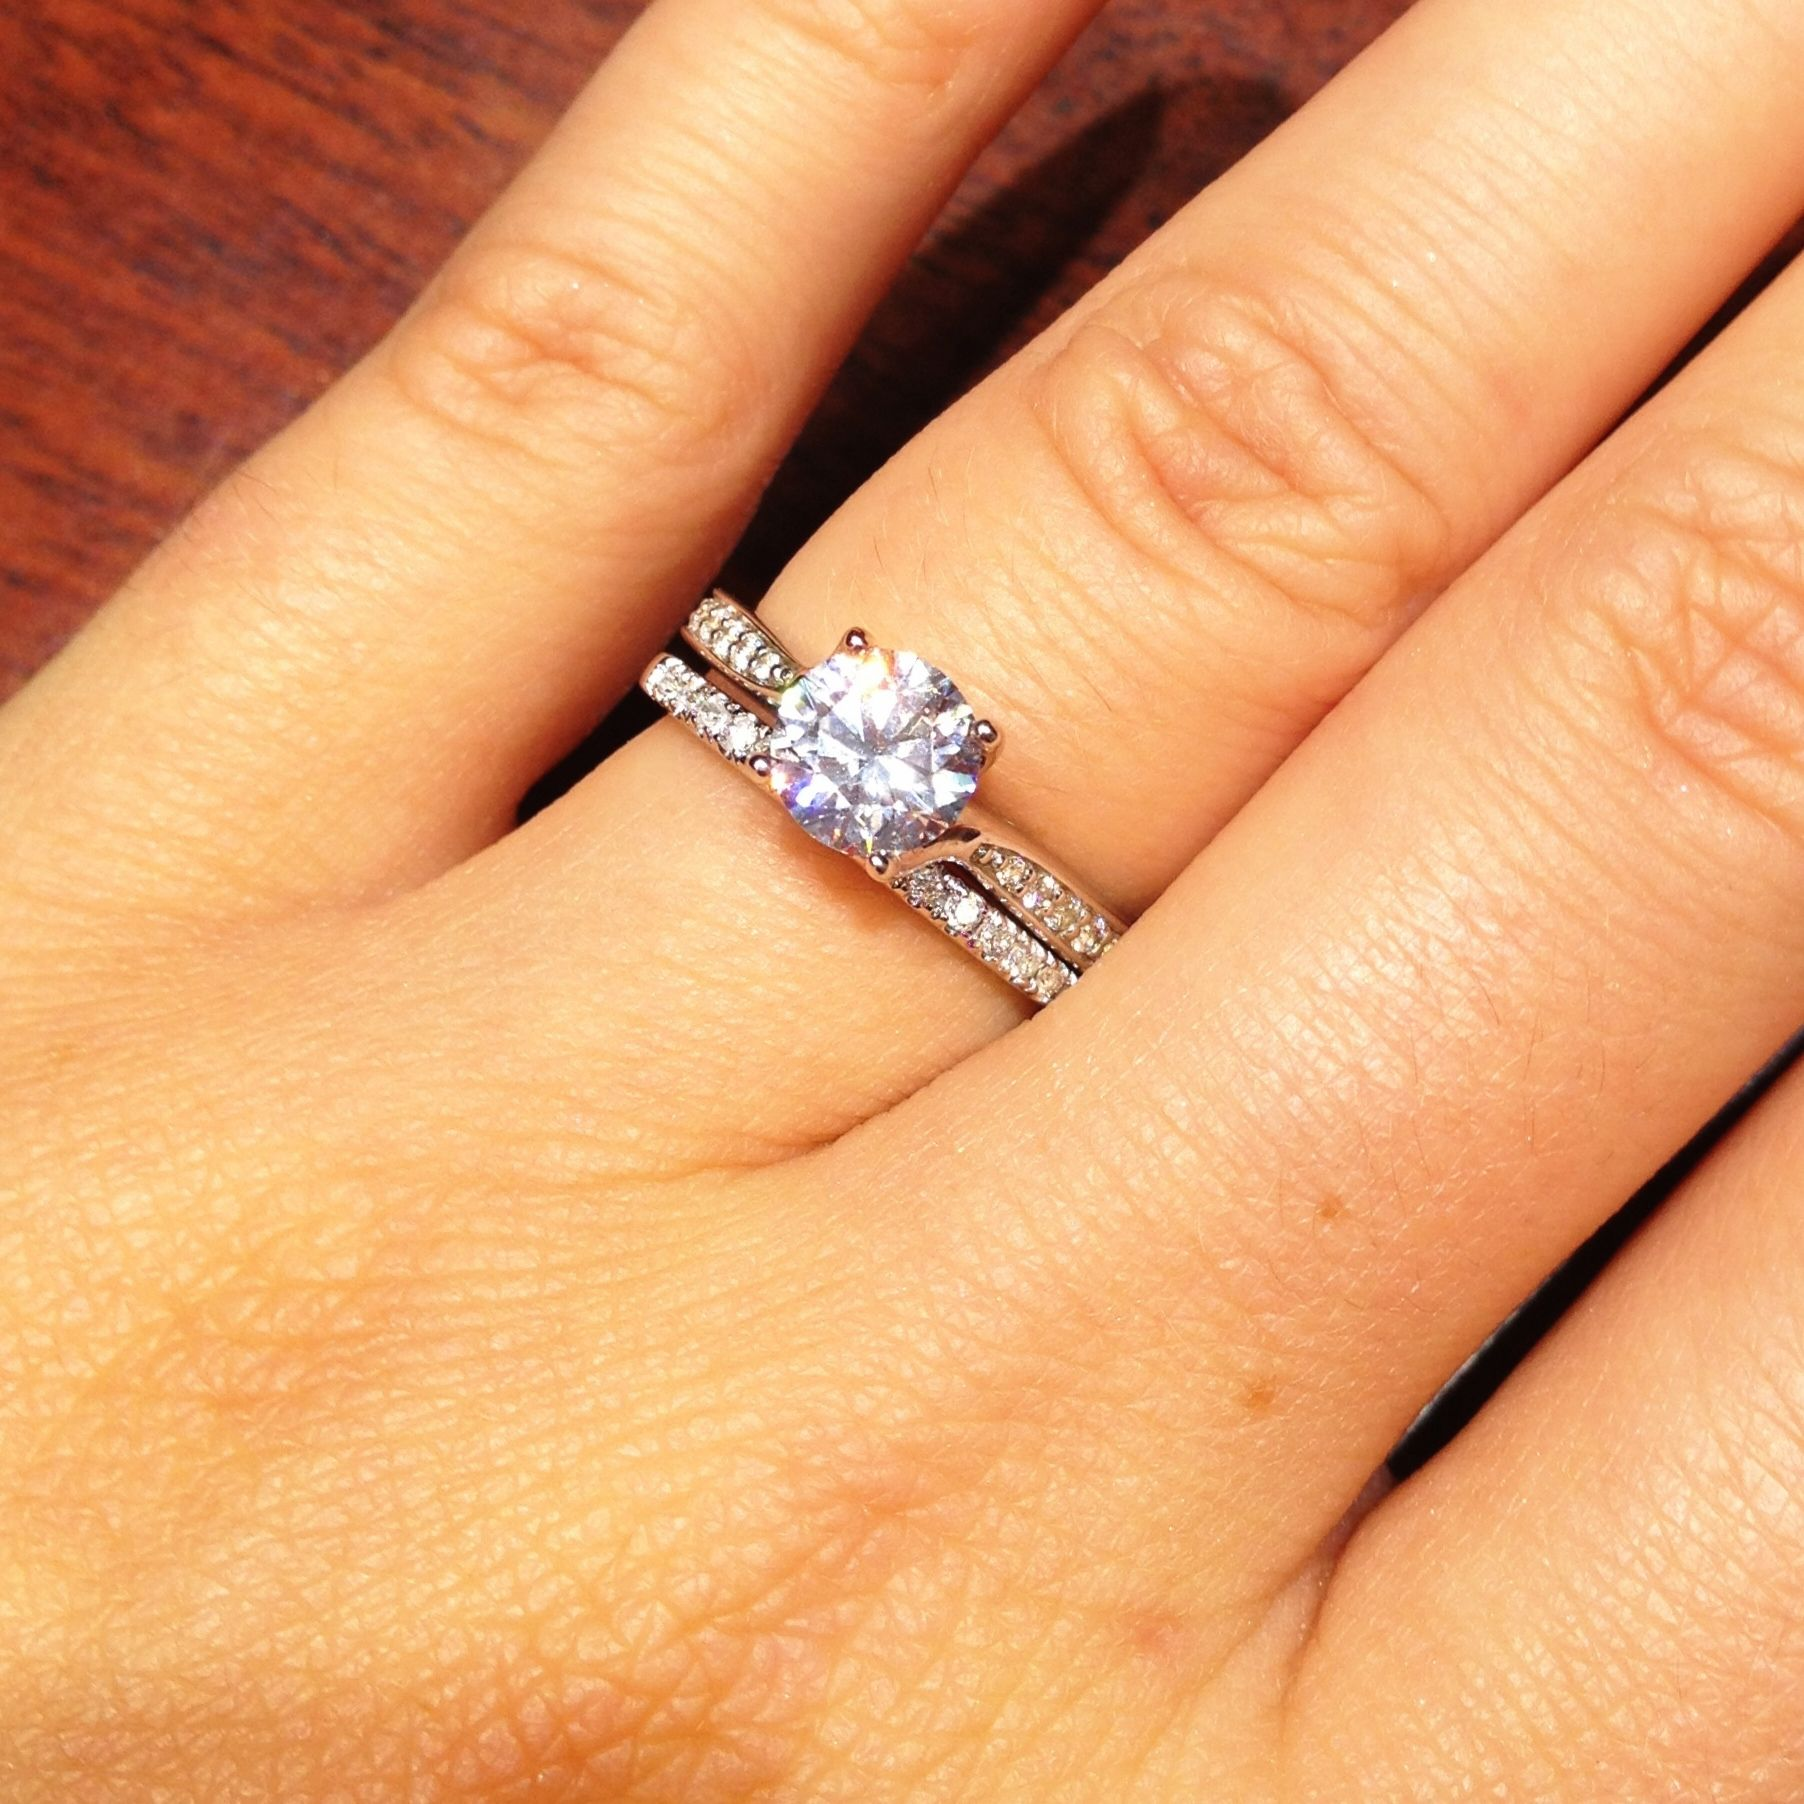 1 Carat Round Solitaire Engagement Ring Wedding Band